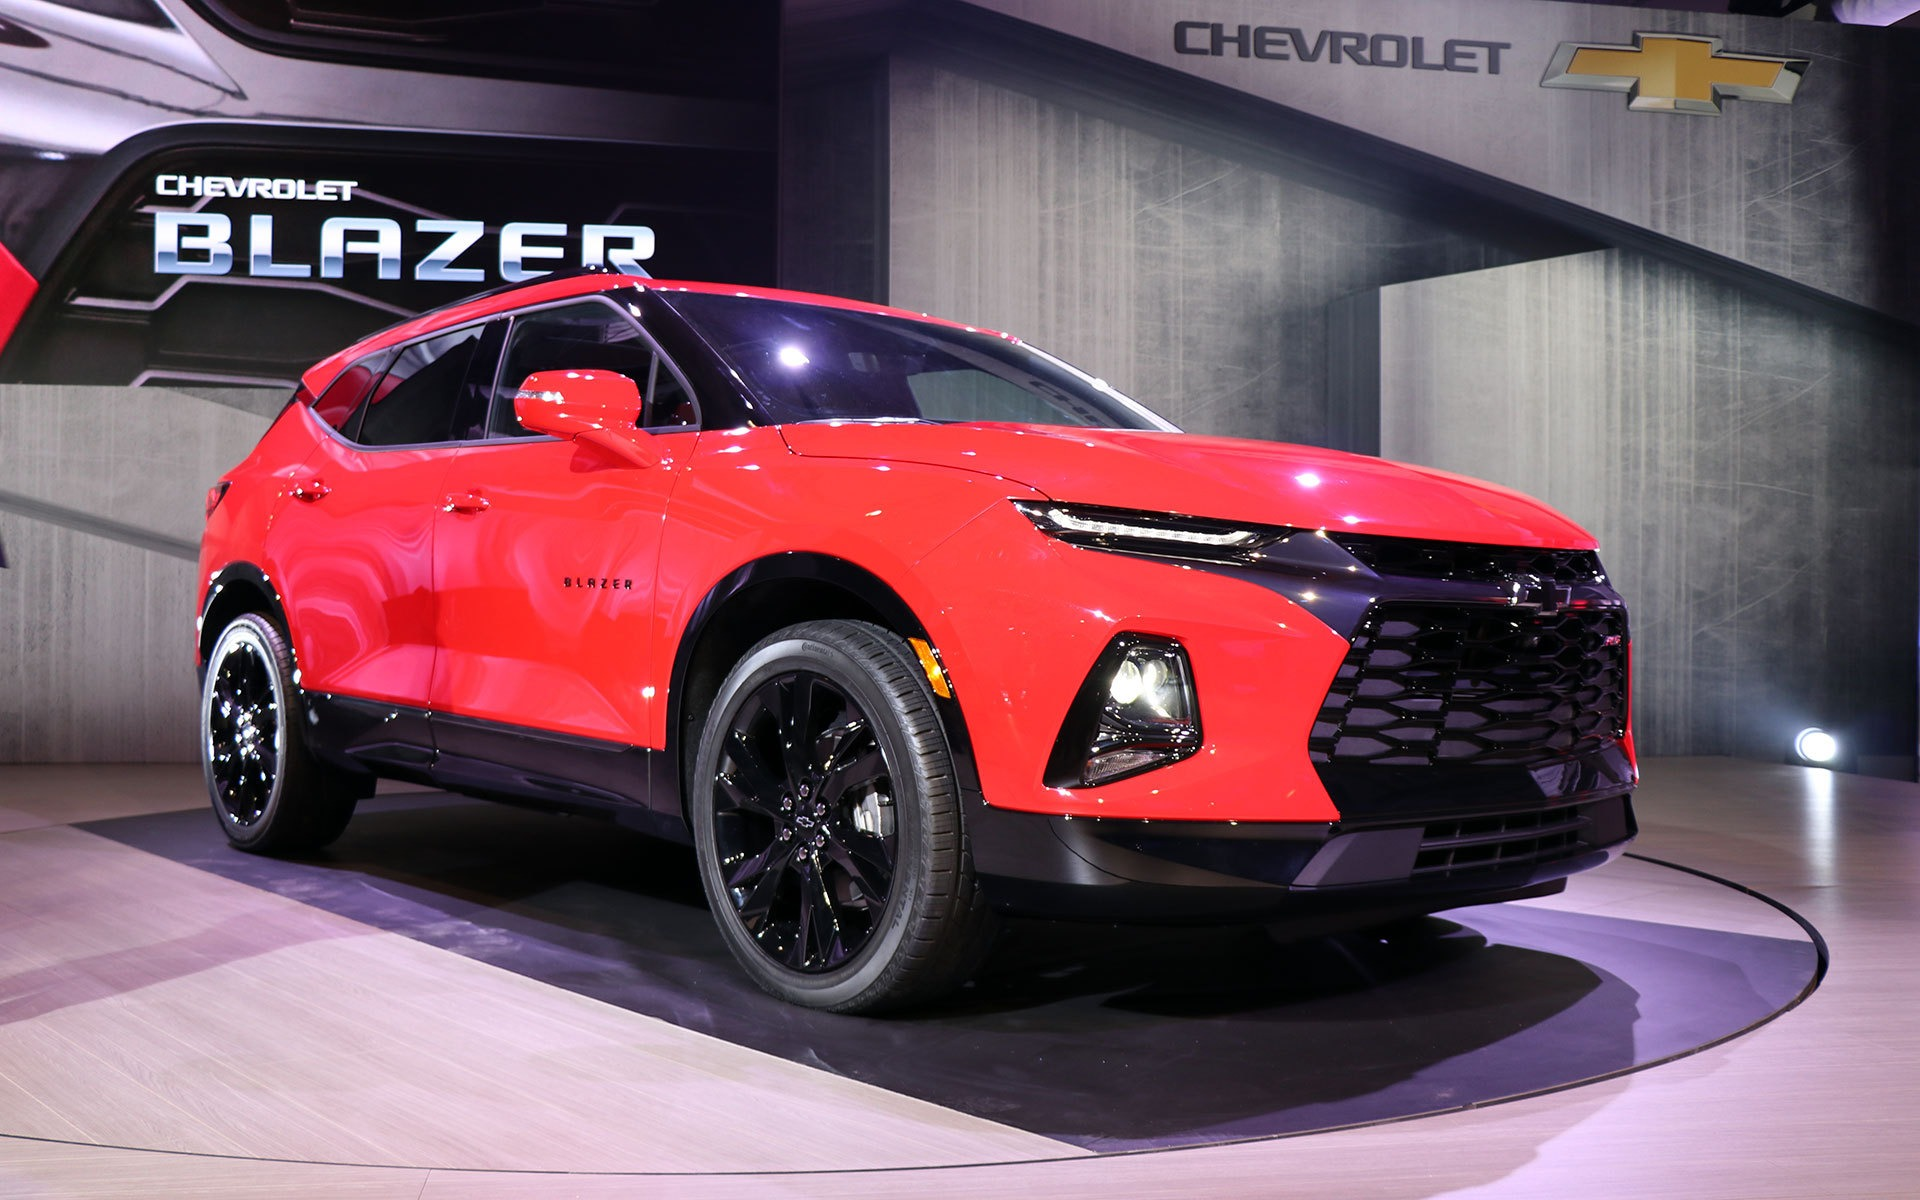 2019 Chevrolet Blazer: The Comeback - The Car Guide